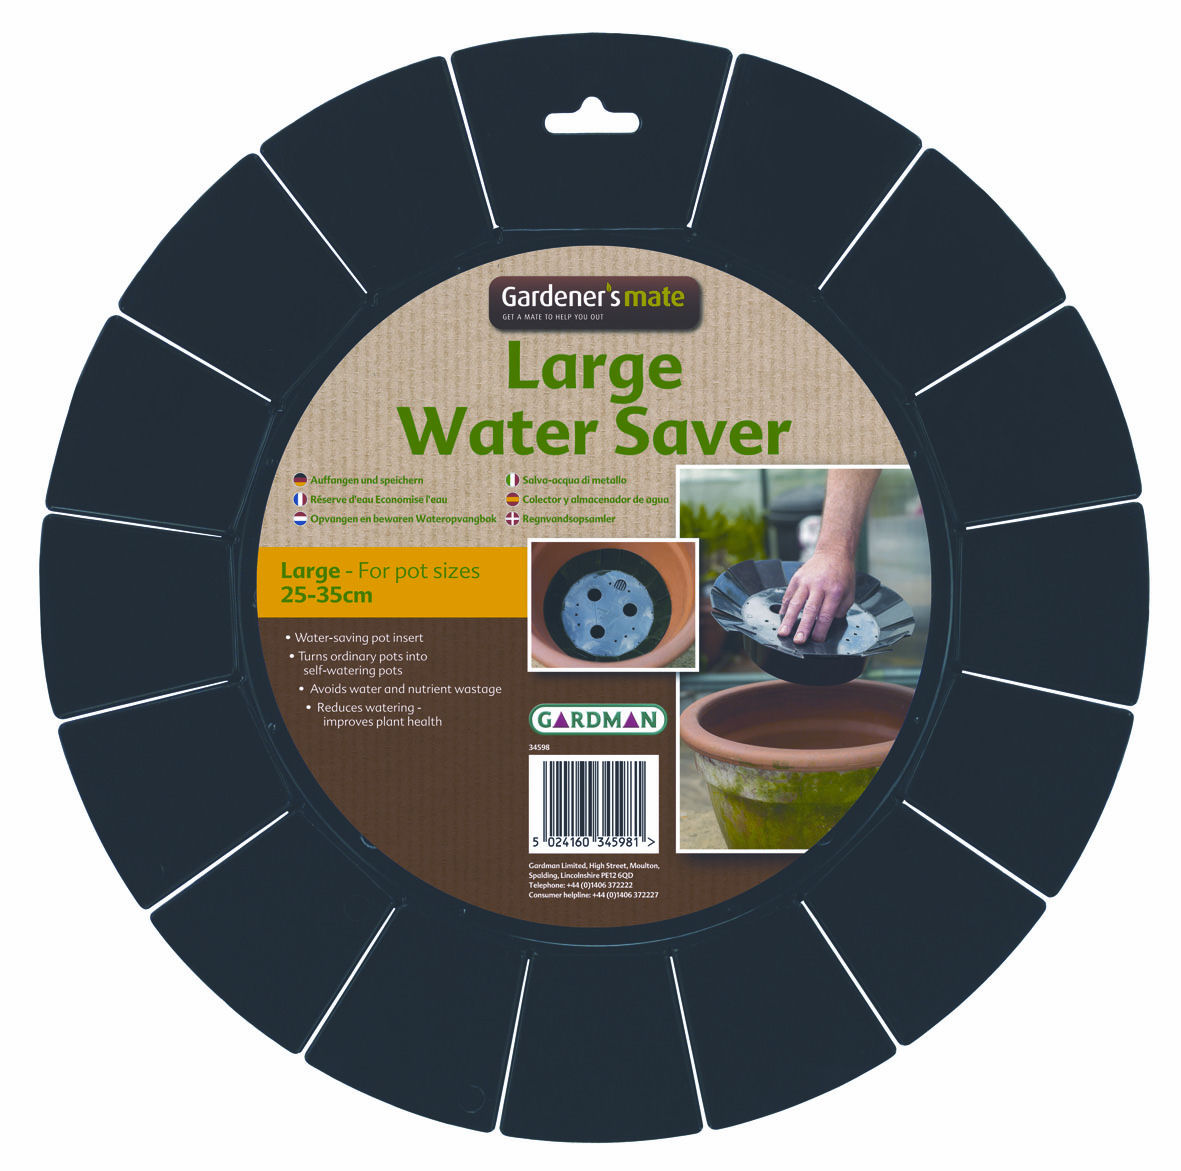 Large Water Saver for Large Garden Pots